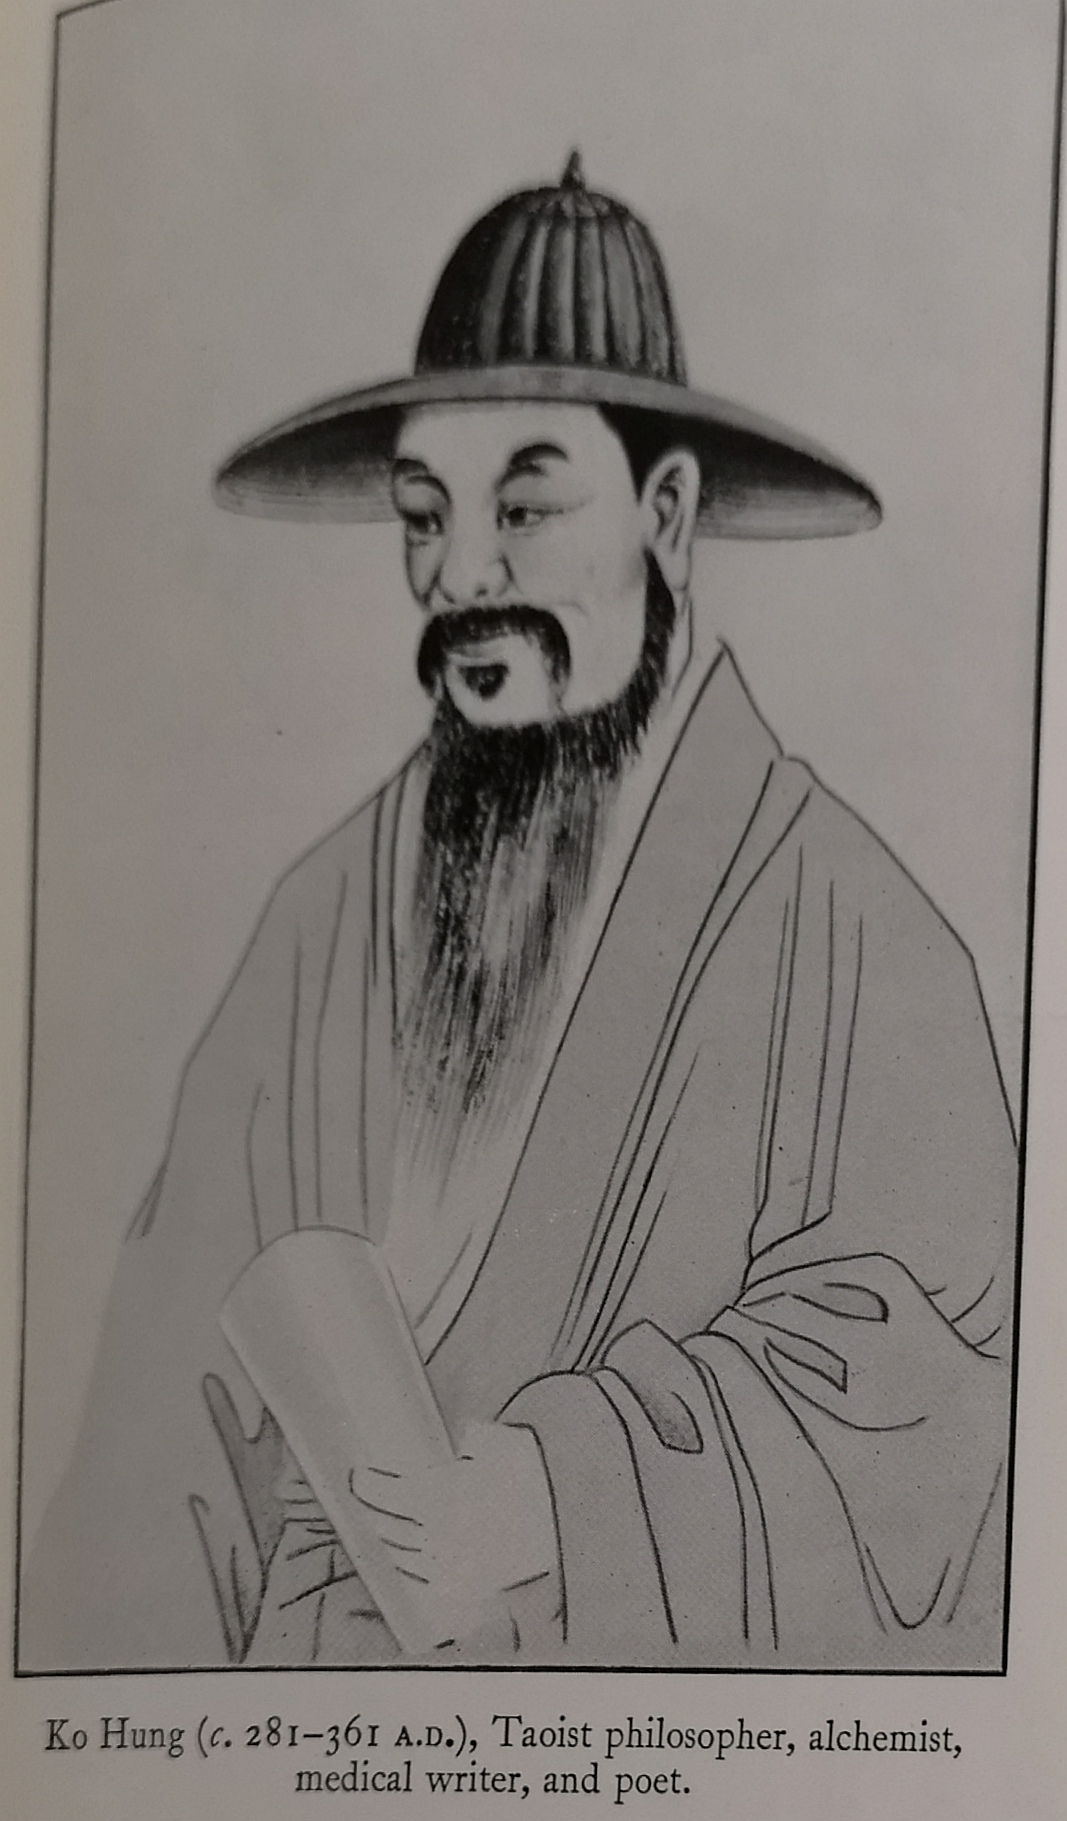 A taoist philosopher, alchemist, medical writer and poet, Ko Hung was the originator of first aid in traditional Chinese medicine.